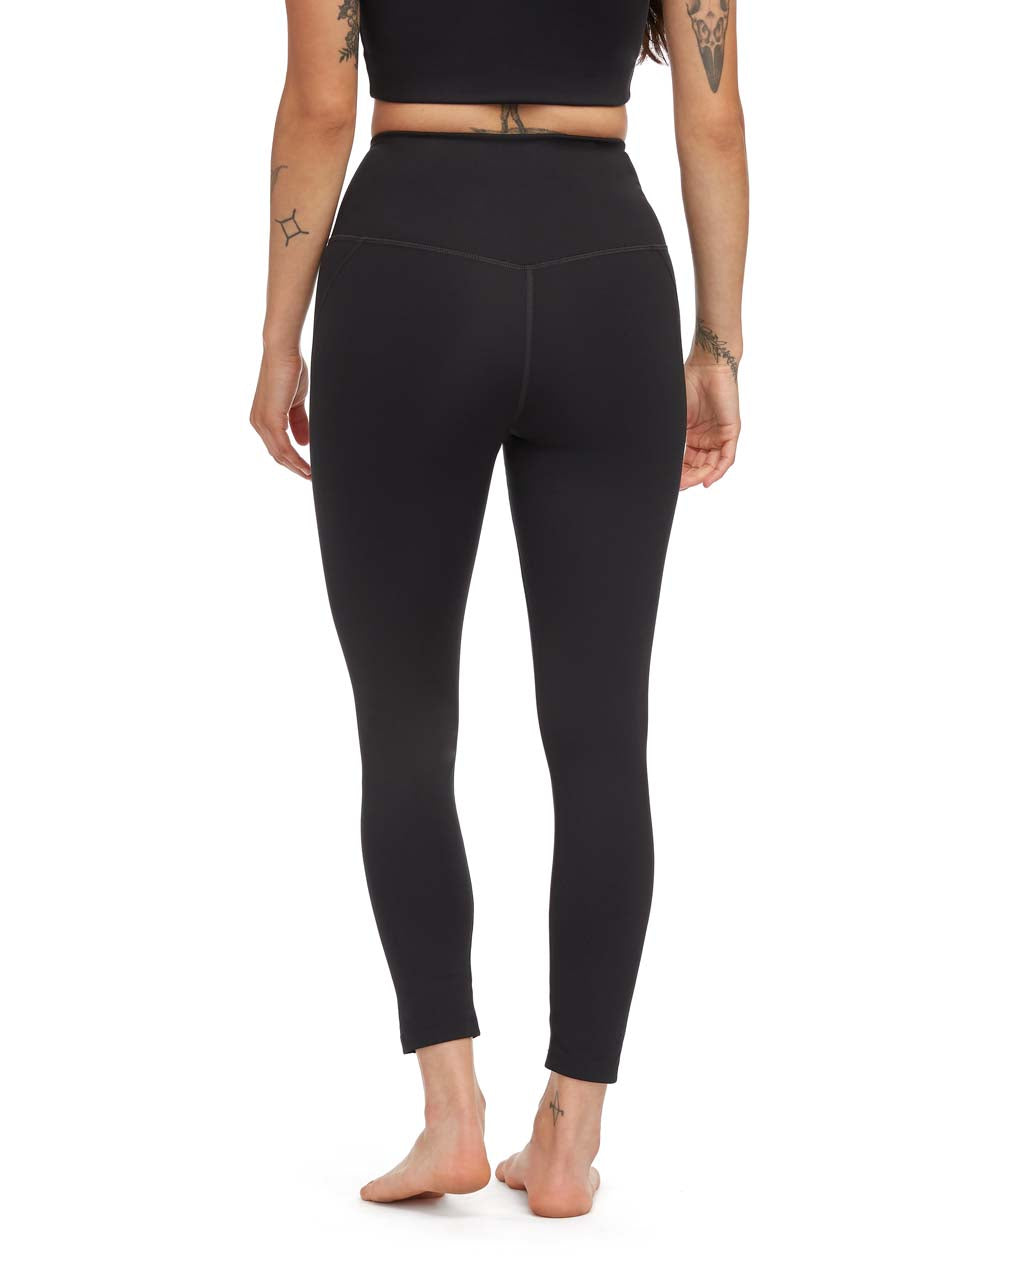 4f297958143dc3 7/8 Compression Legging - Black by Girlfriend Collective - active ...